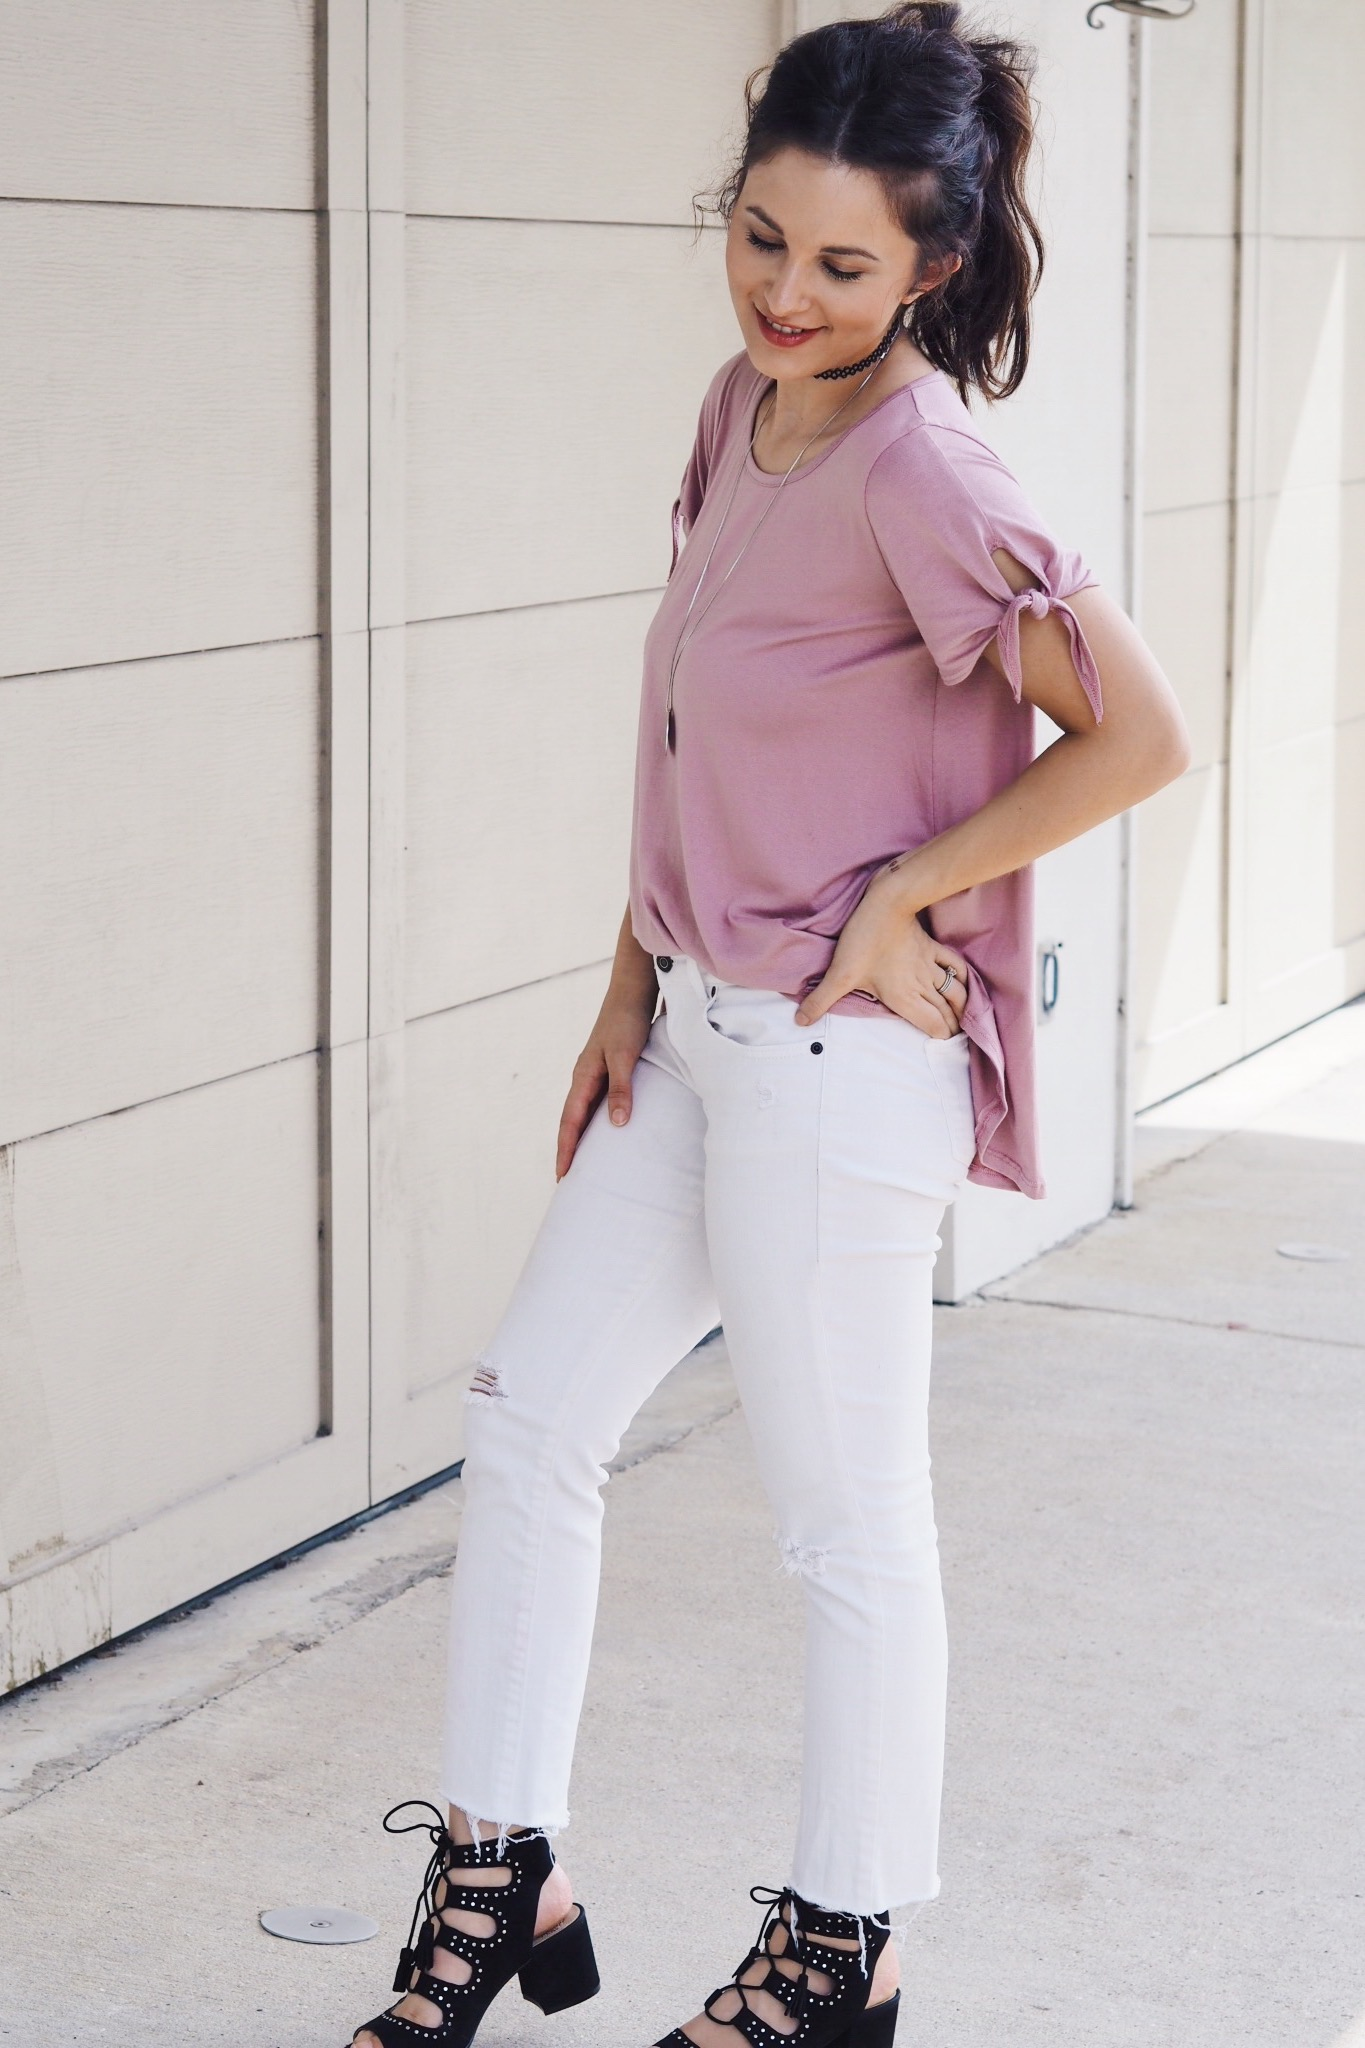 shop pink blush. blush top. pink t-shirt. knotted top. knot t-shirt. everyday mom style. white jeans. choker